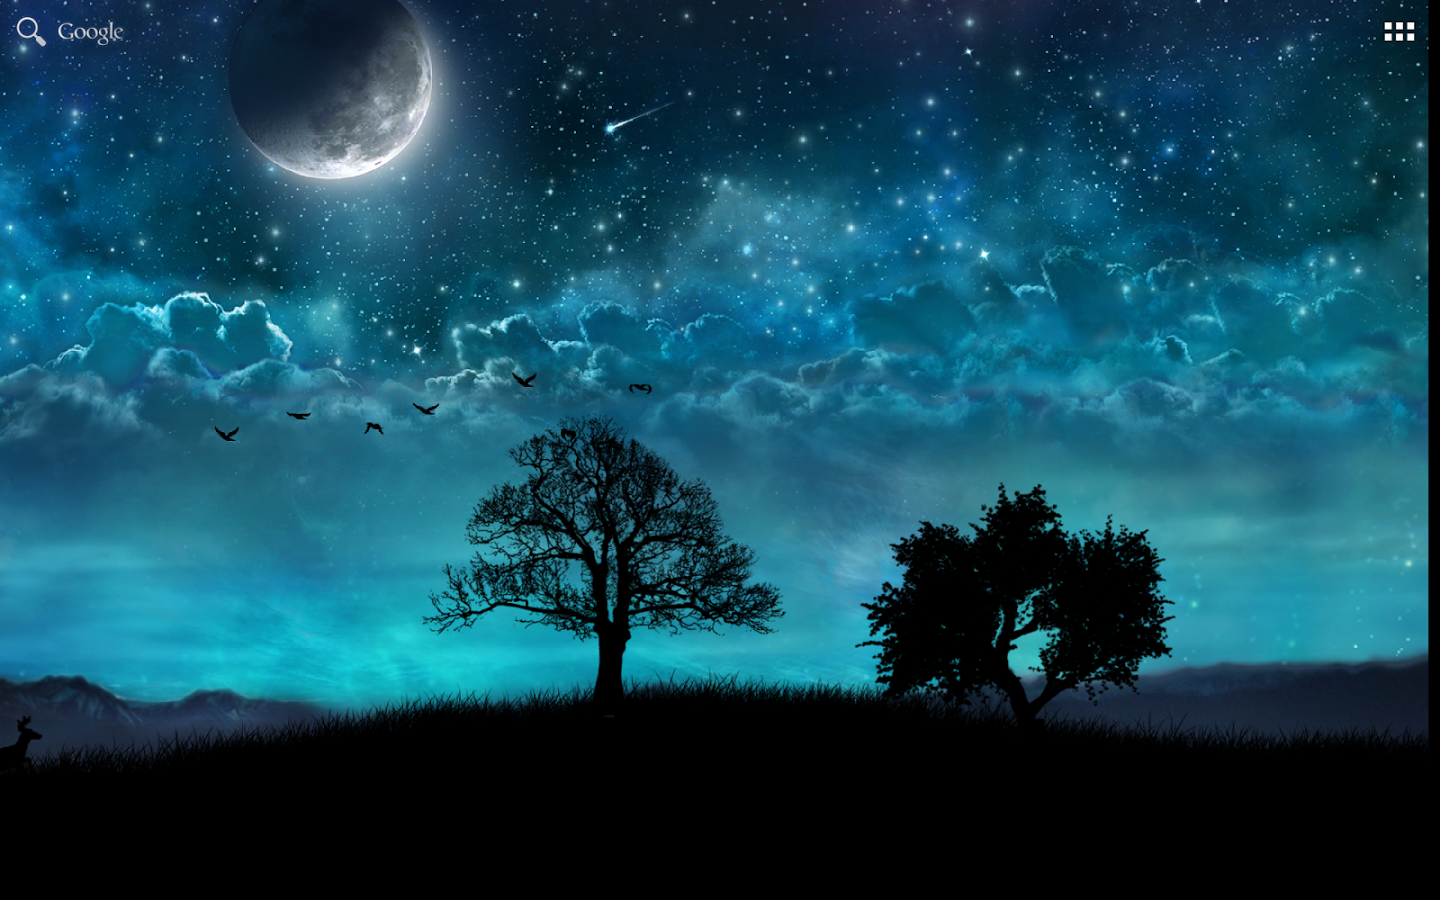 Dream Night LiveWallpaper   Android Apps on Google Play 1440x900